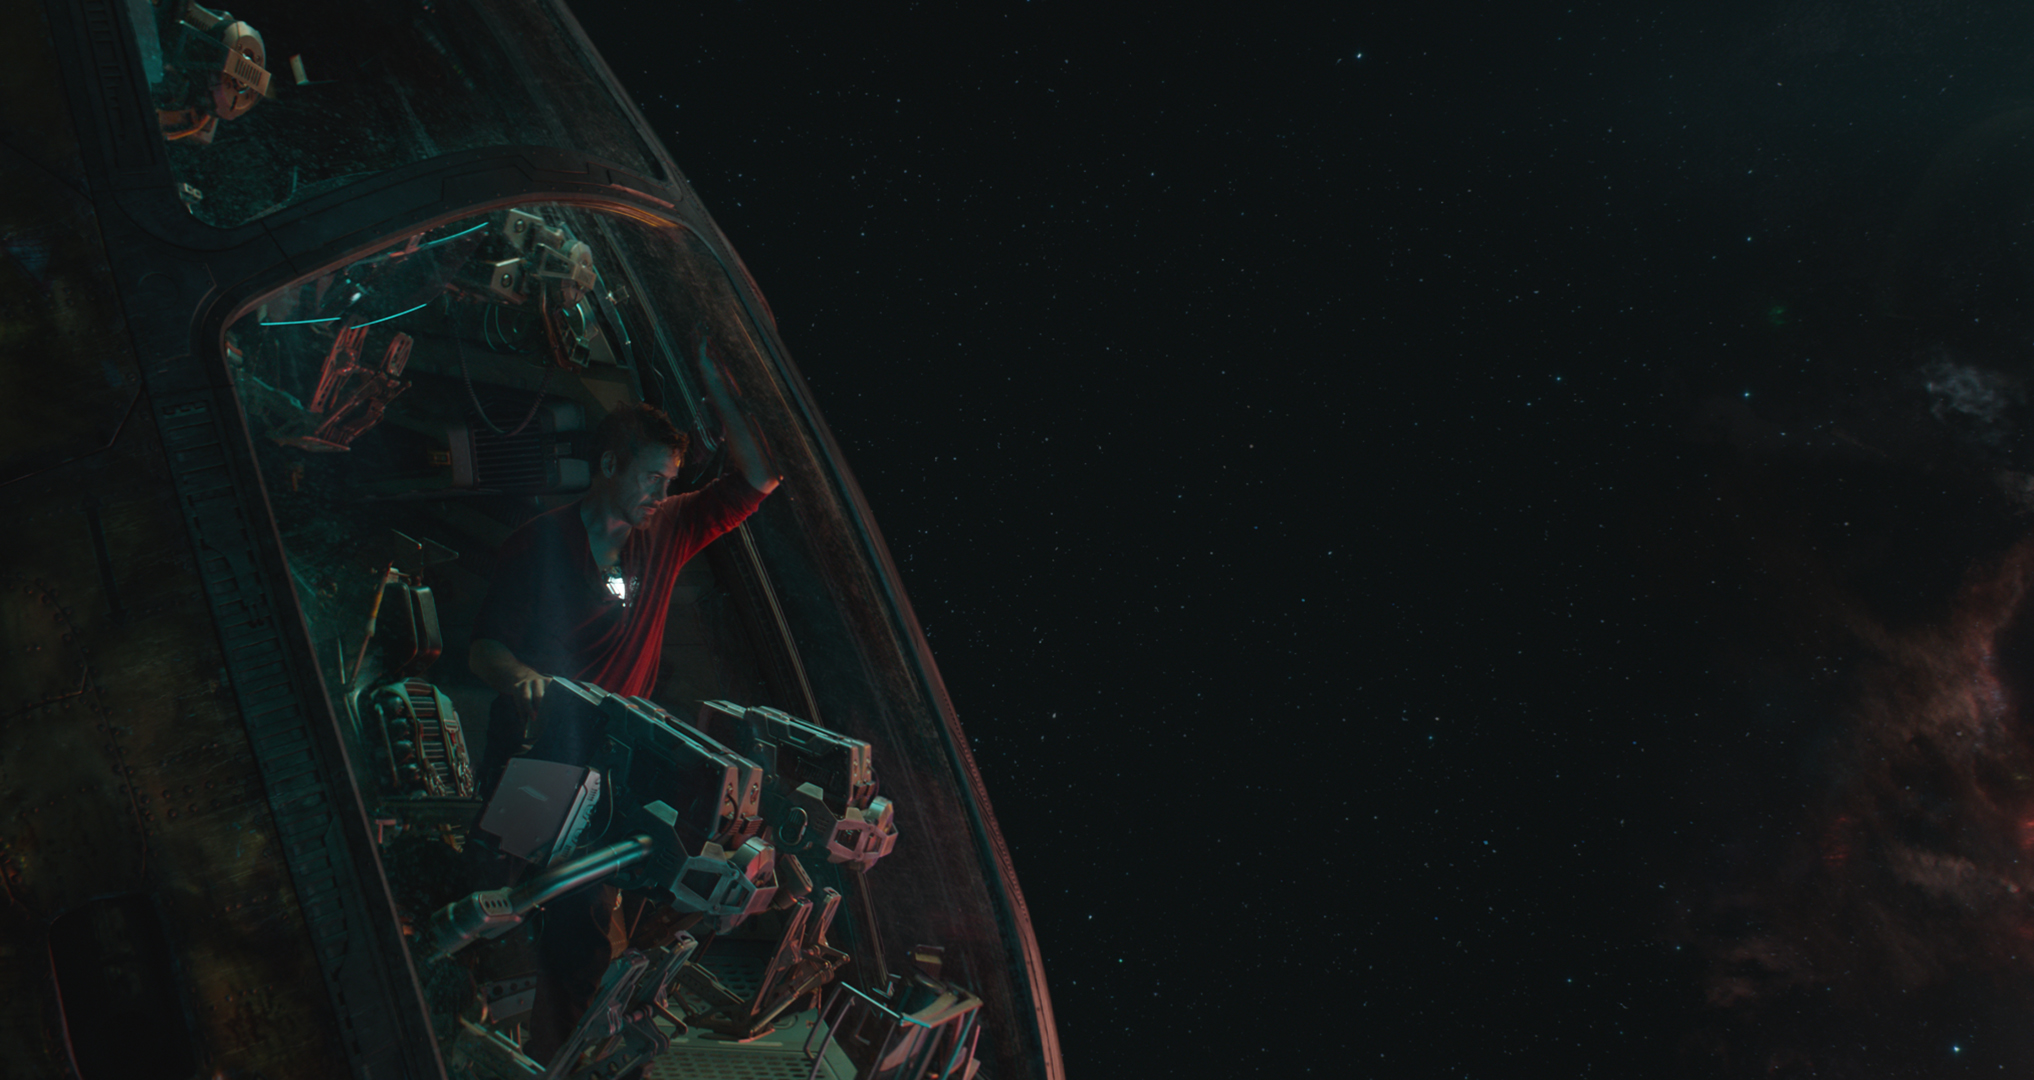 Still from 'Avengers: Endgame' featuring Tony Stark/Iron Man (Robert Downey Jr) in a spaceship.